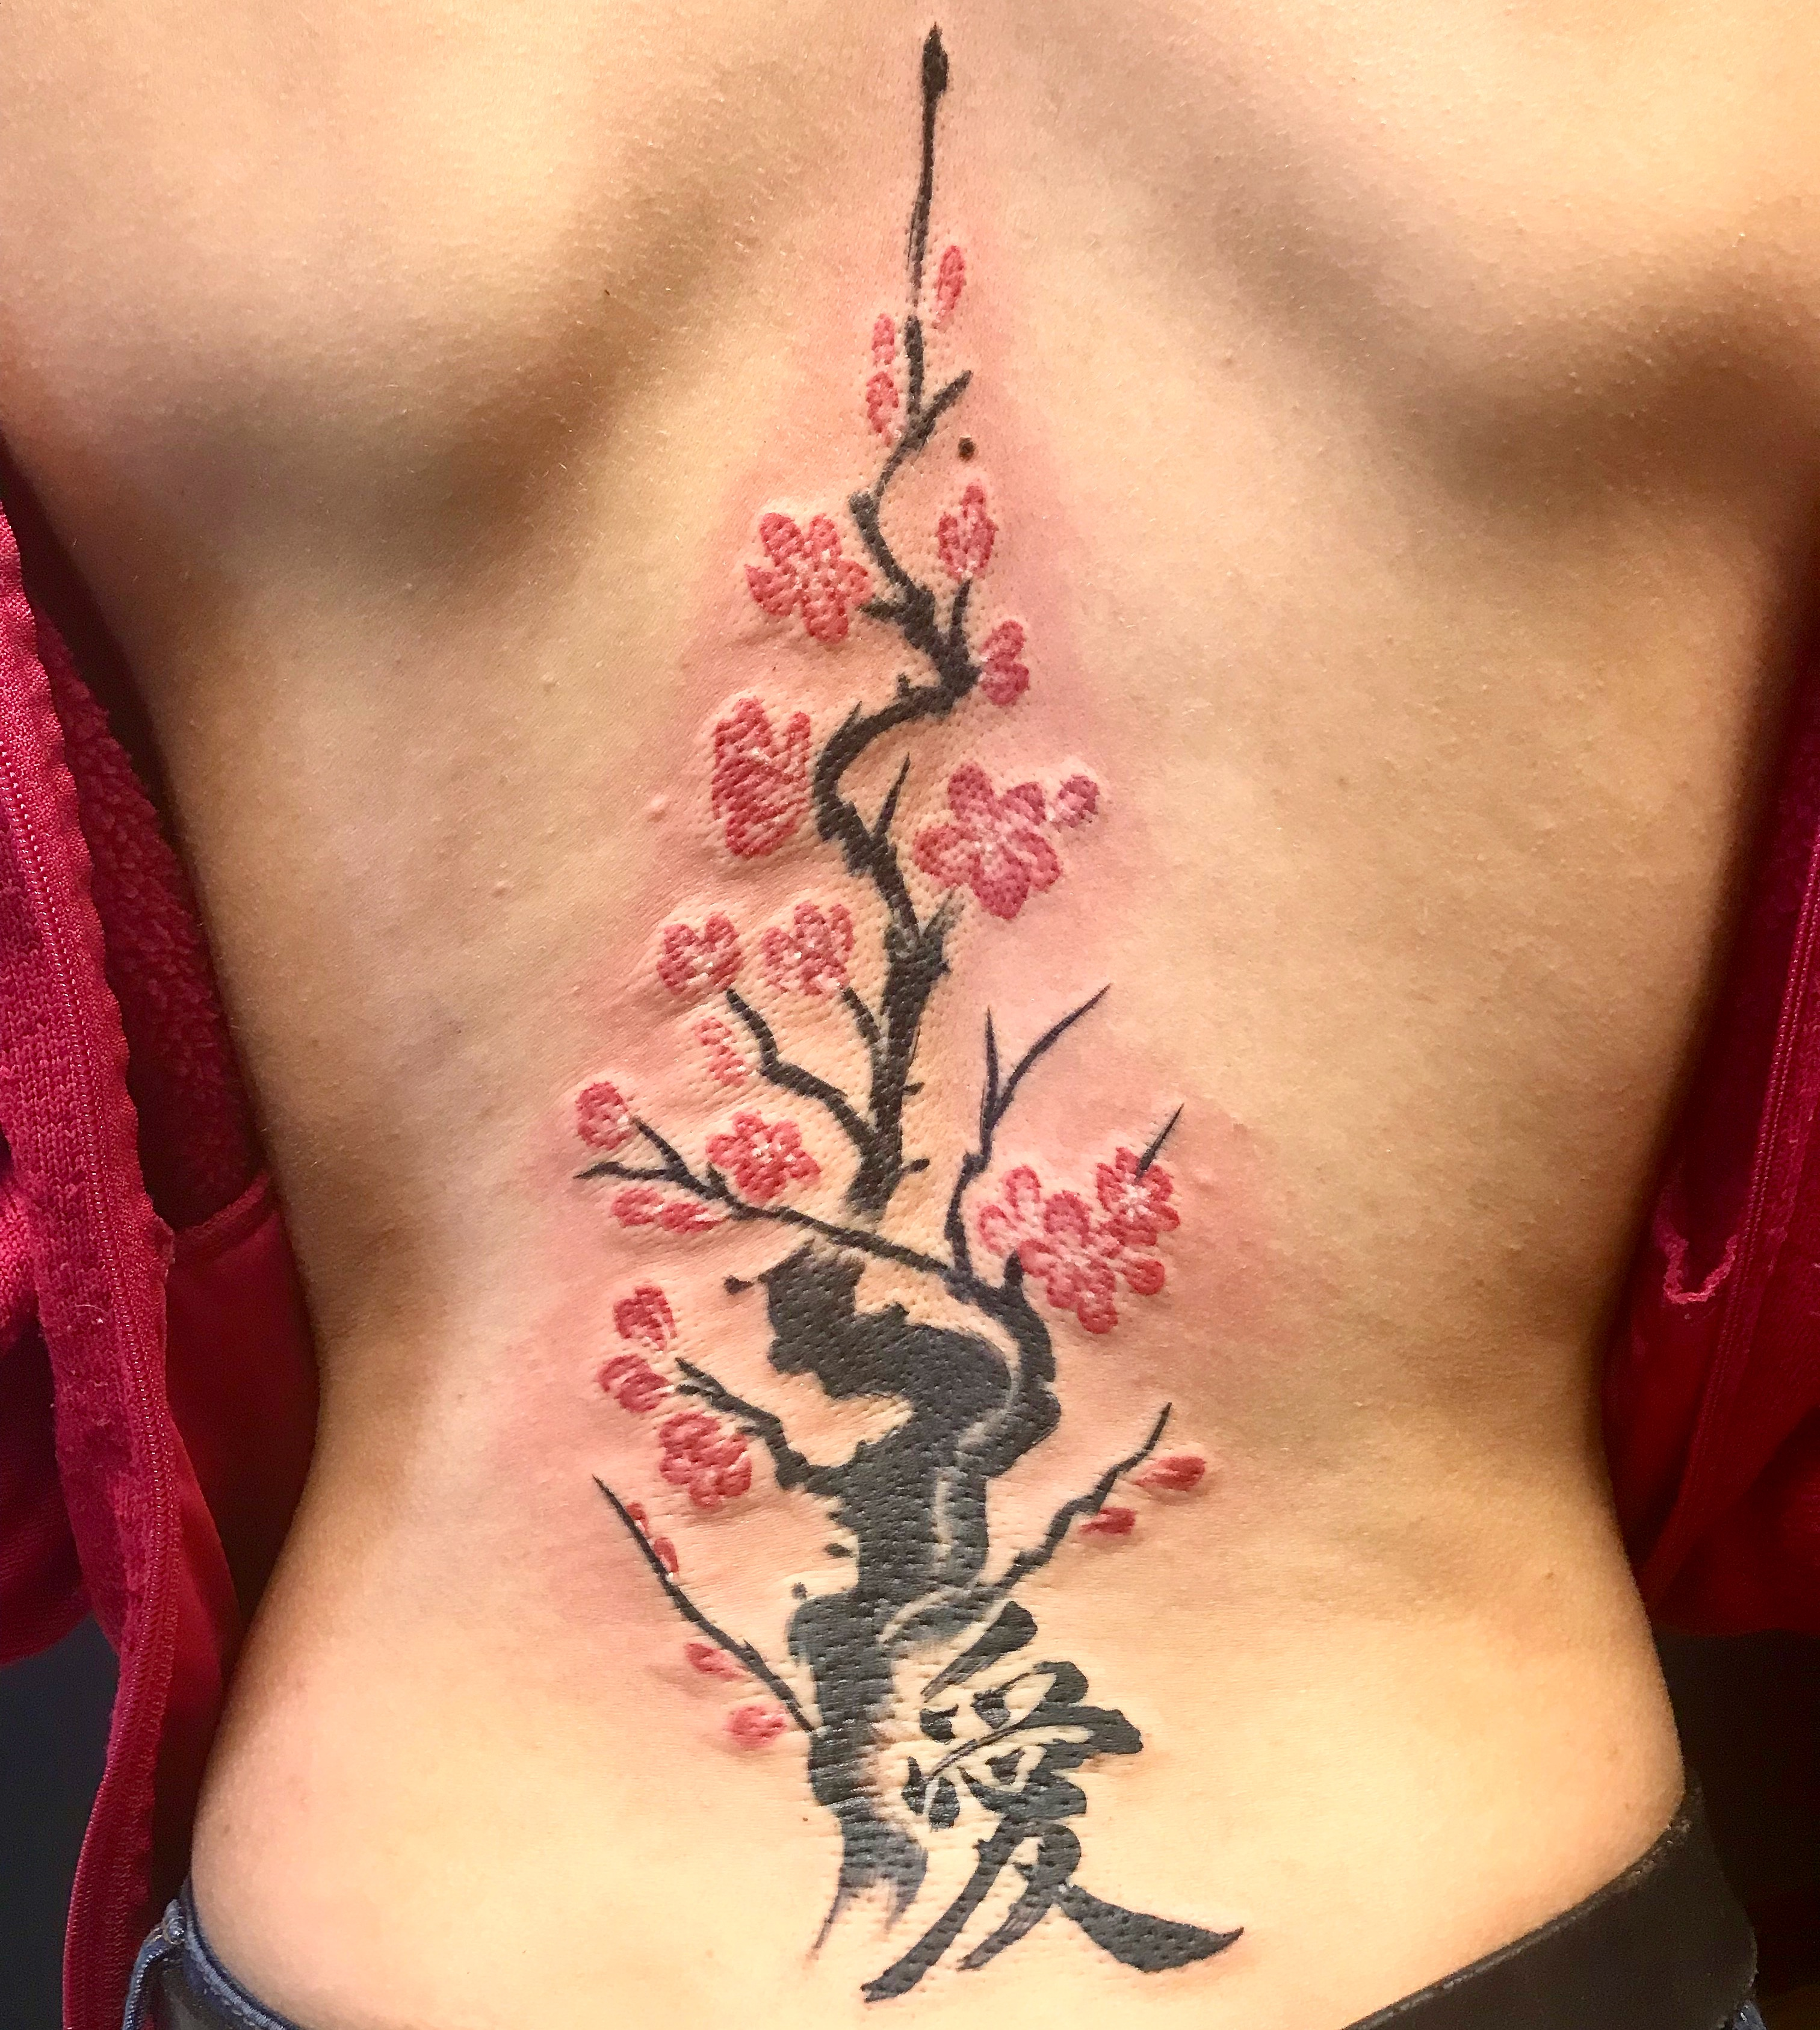 The Meaning Behind My Cherry Blossom And Kanji Tattoo